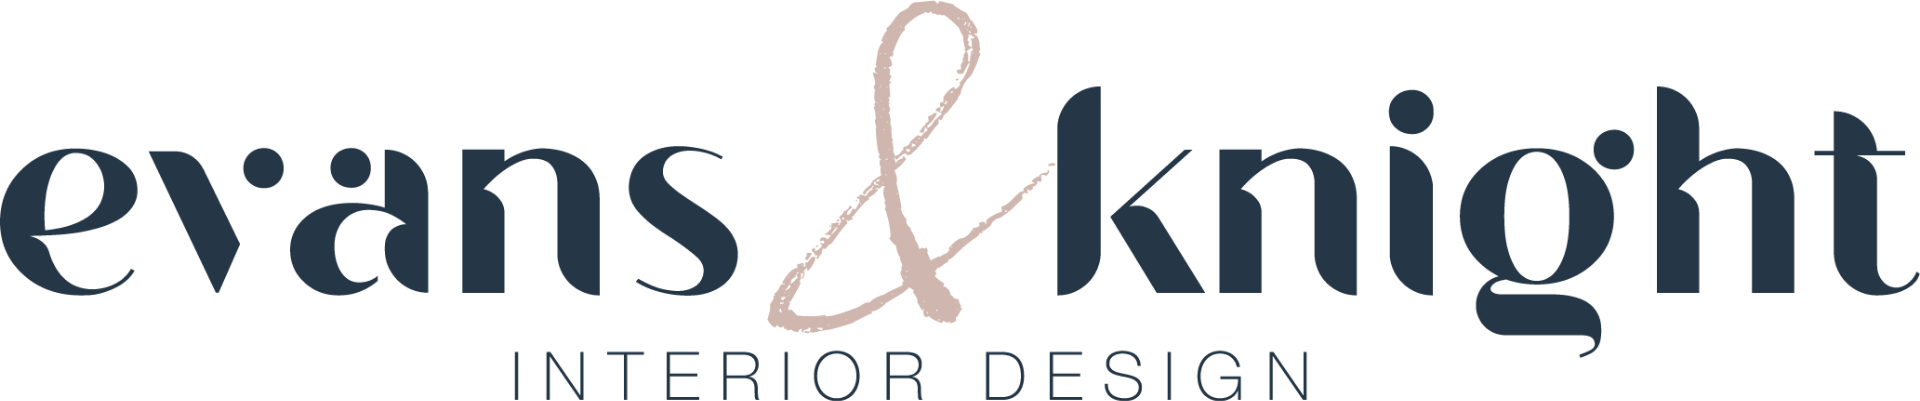 Evans & Knight Interior Design